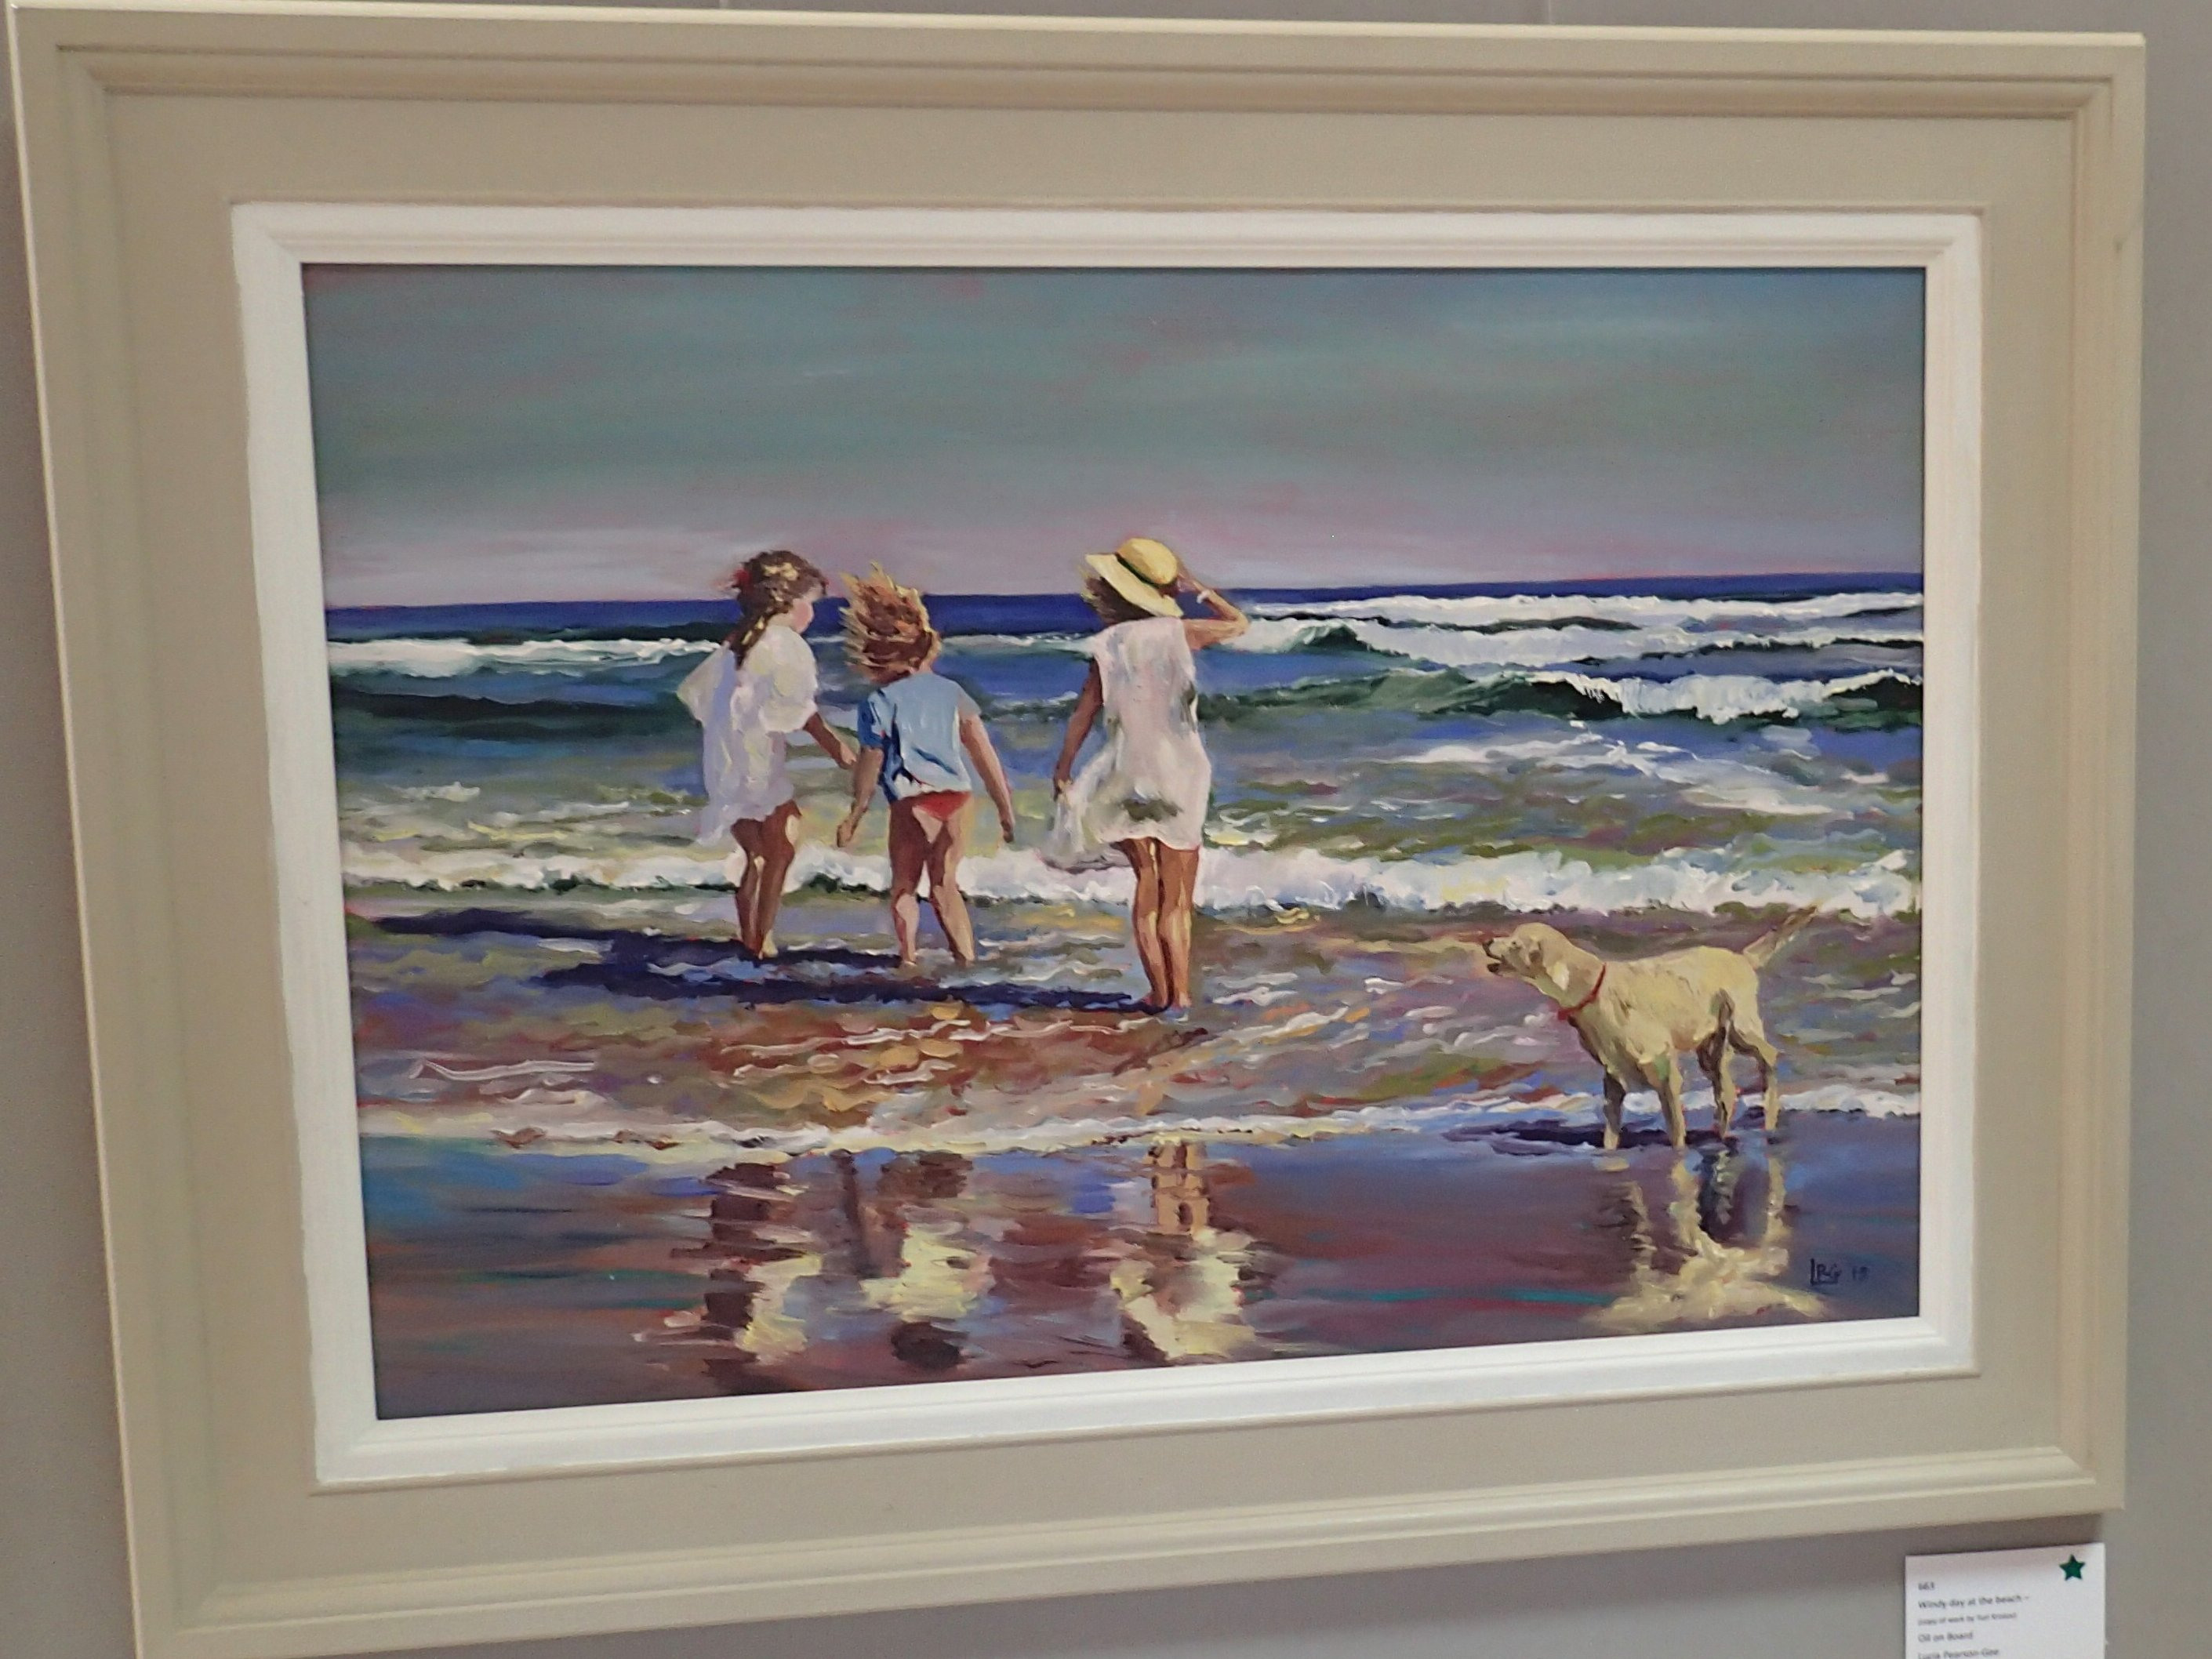 Windy Day at the Beach (Copy of work by Yuri Krotov) by Lucia PearsonG